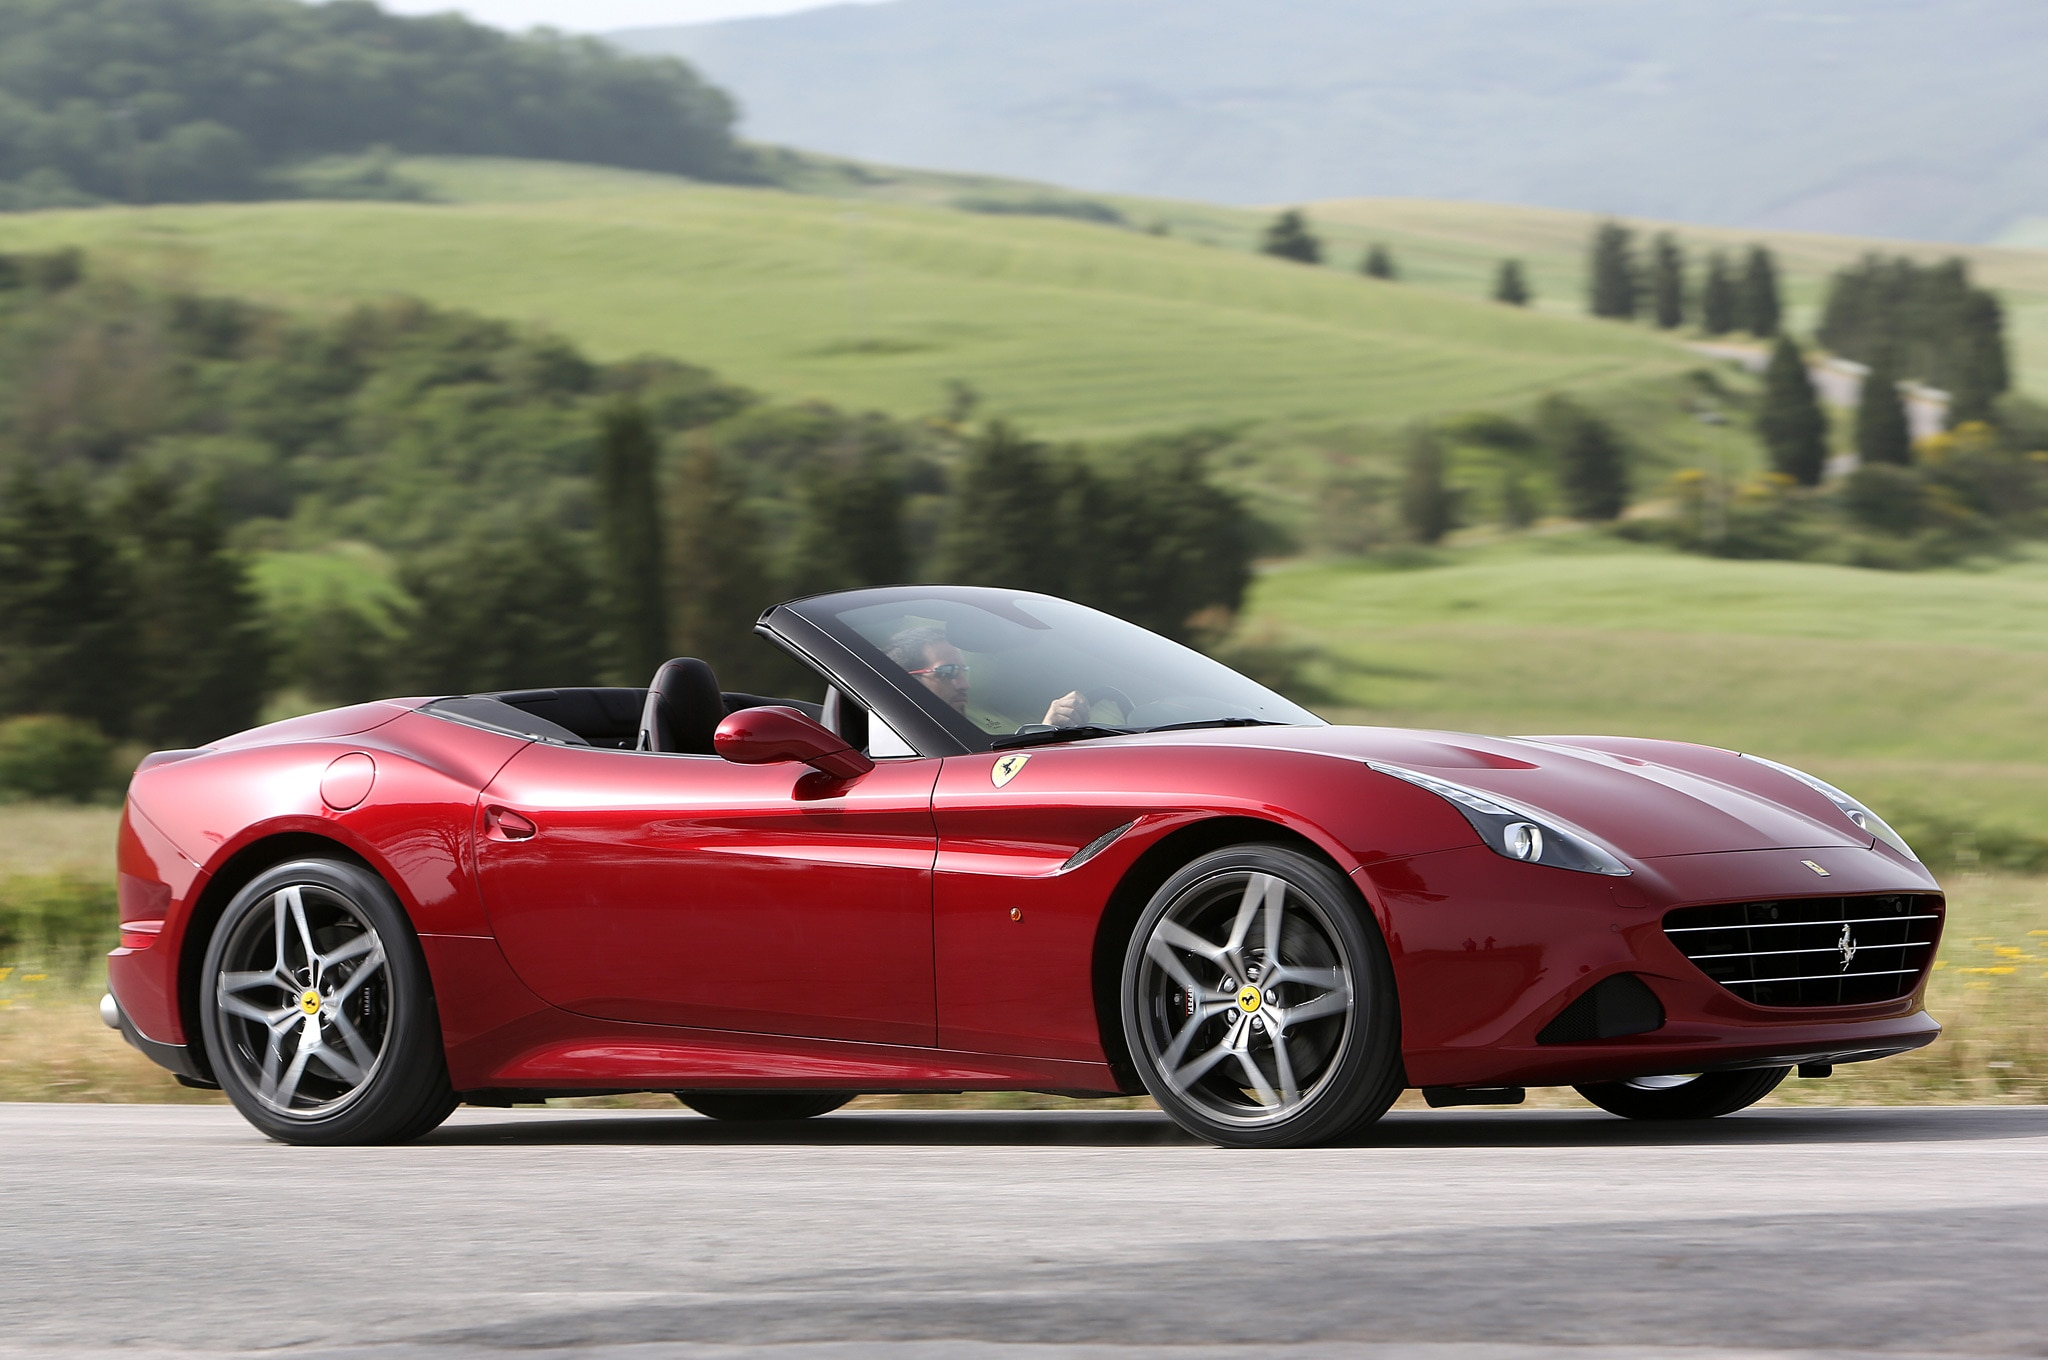 2018 ferrari california t price. wonderful ferrari appearance counts in 2018 ferrari california t price